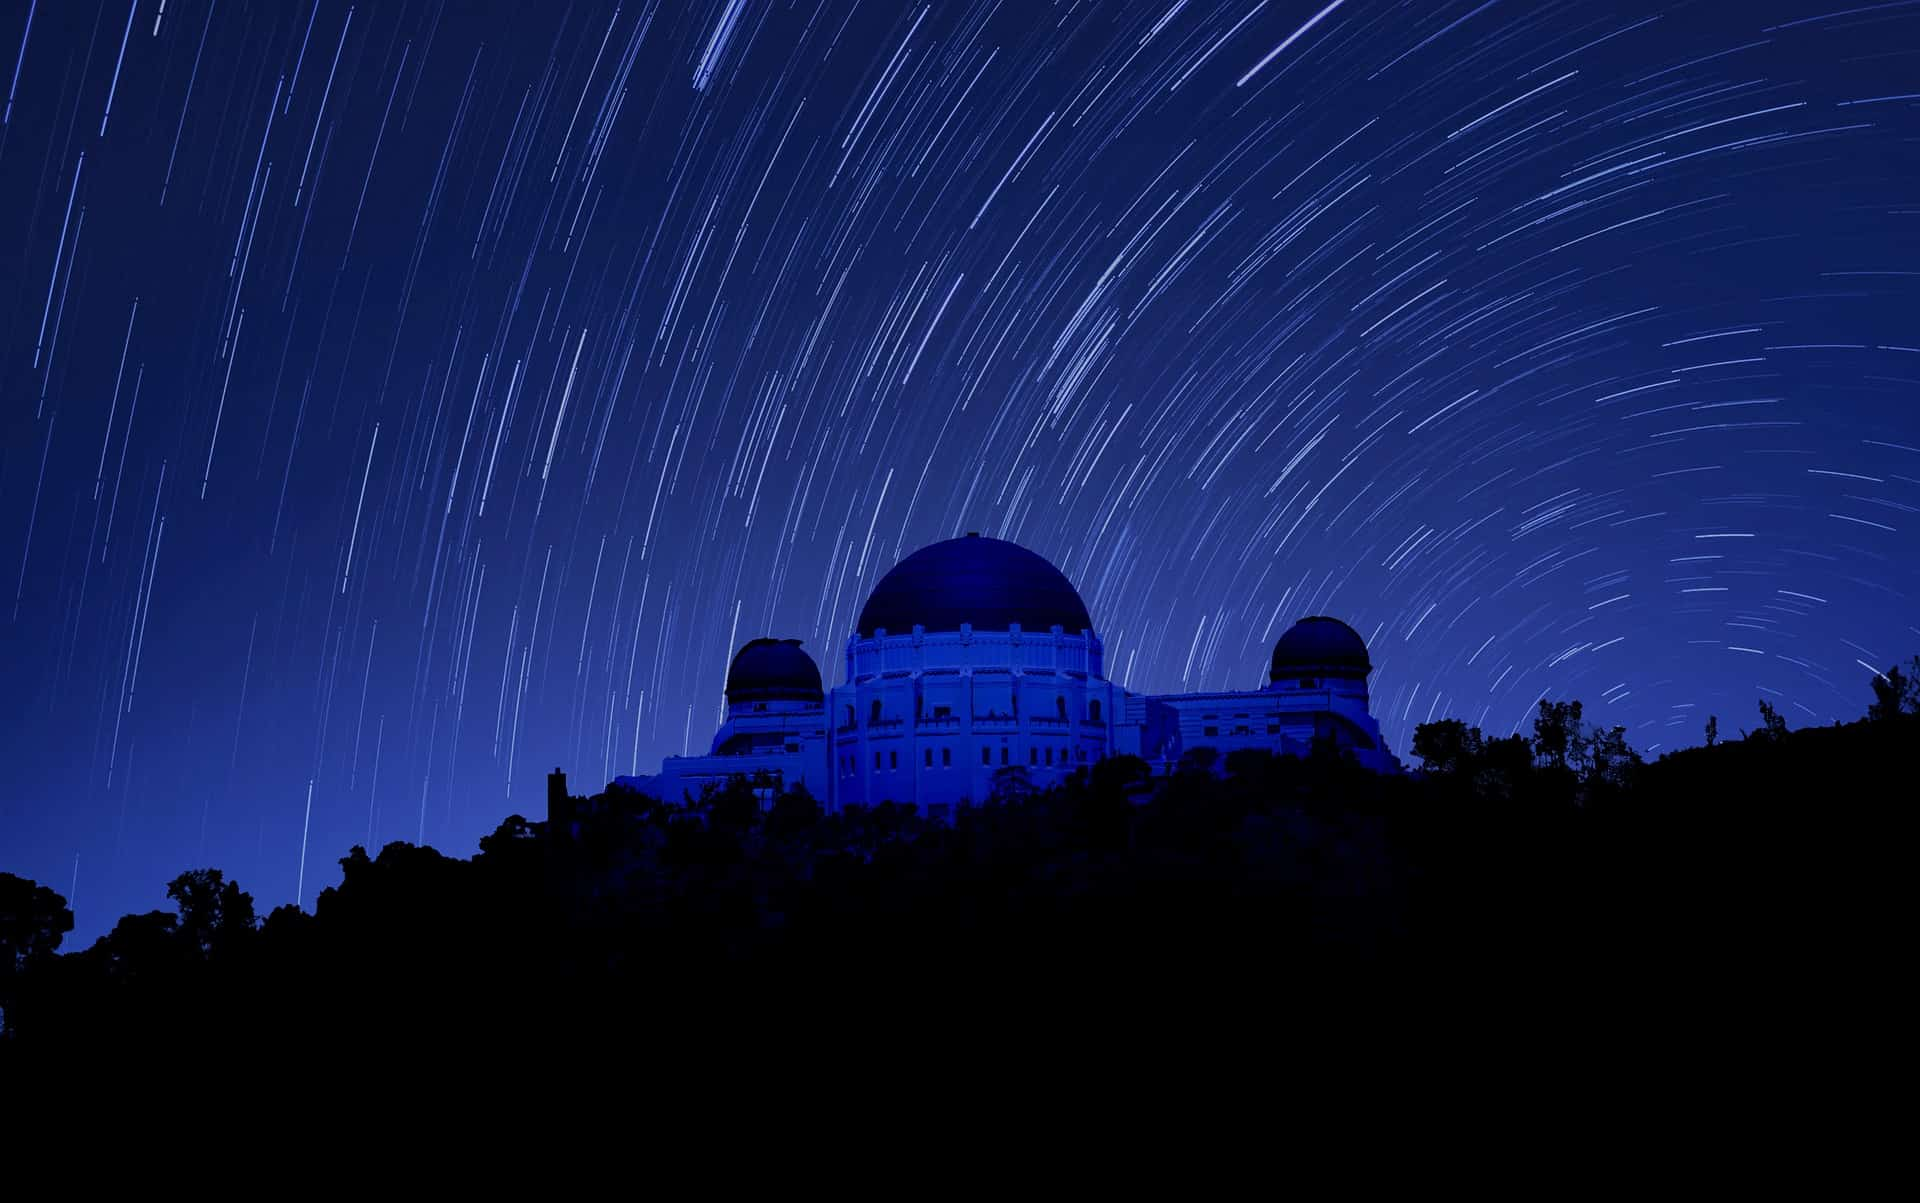 Know About The Astronomy & Astrophysics